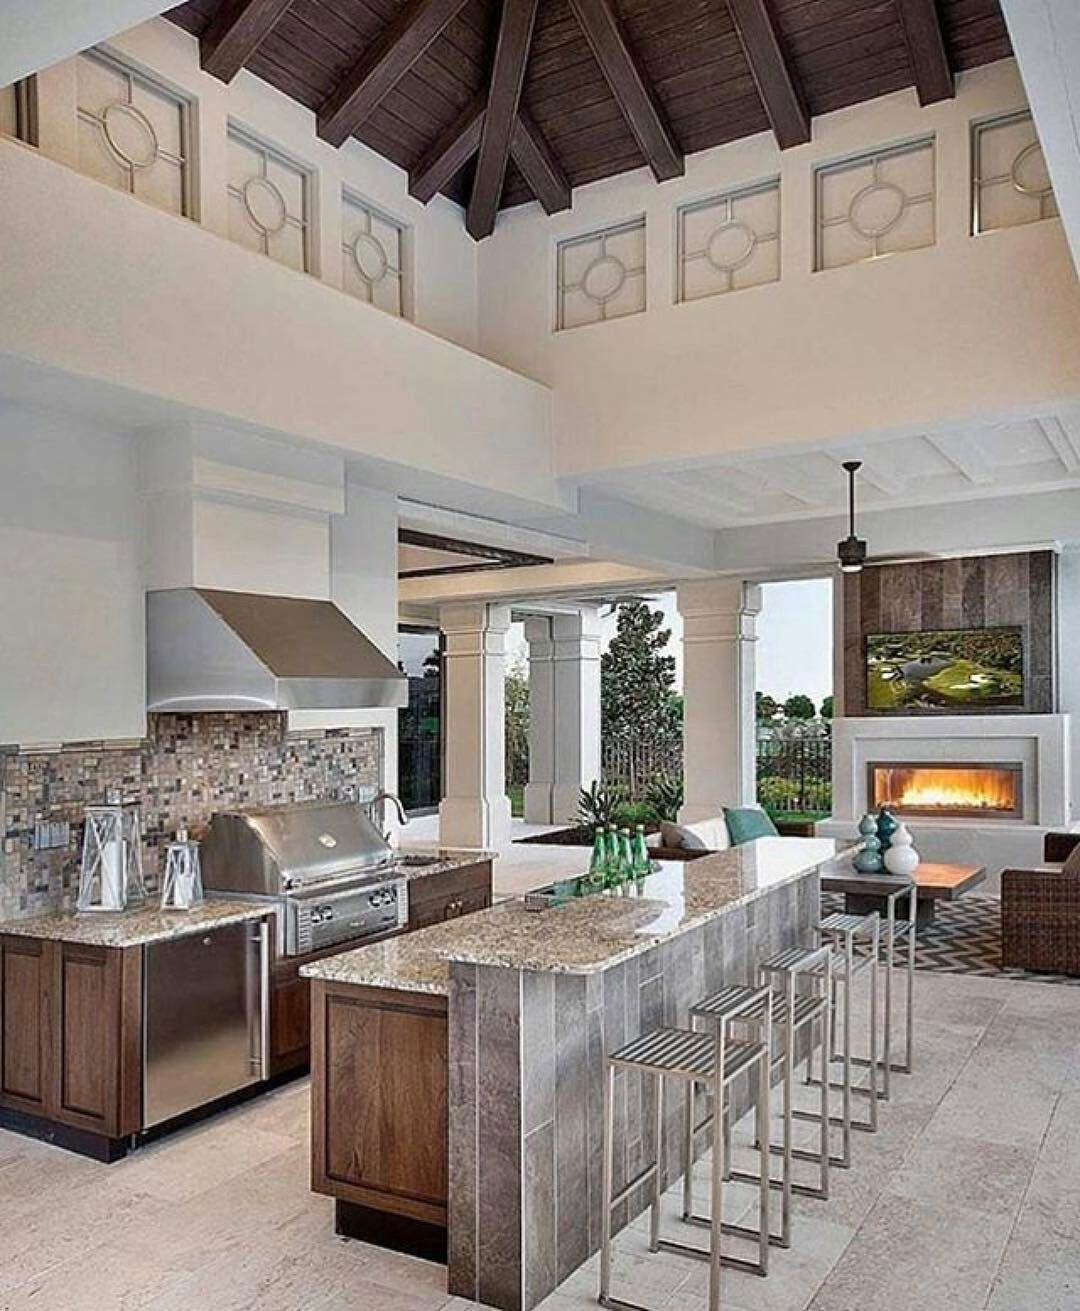 Covered outdoor kitchen with fireplace and dining area. | Pools ...